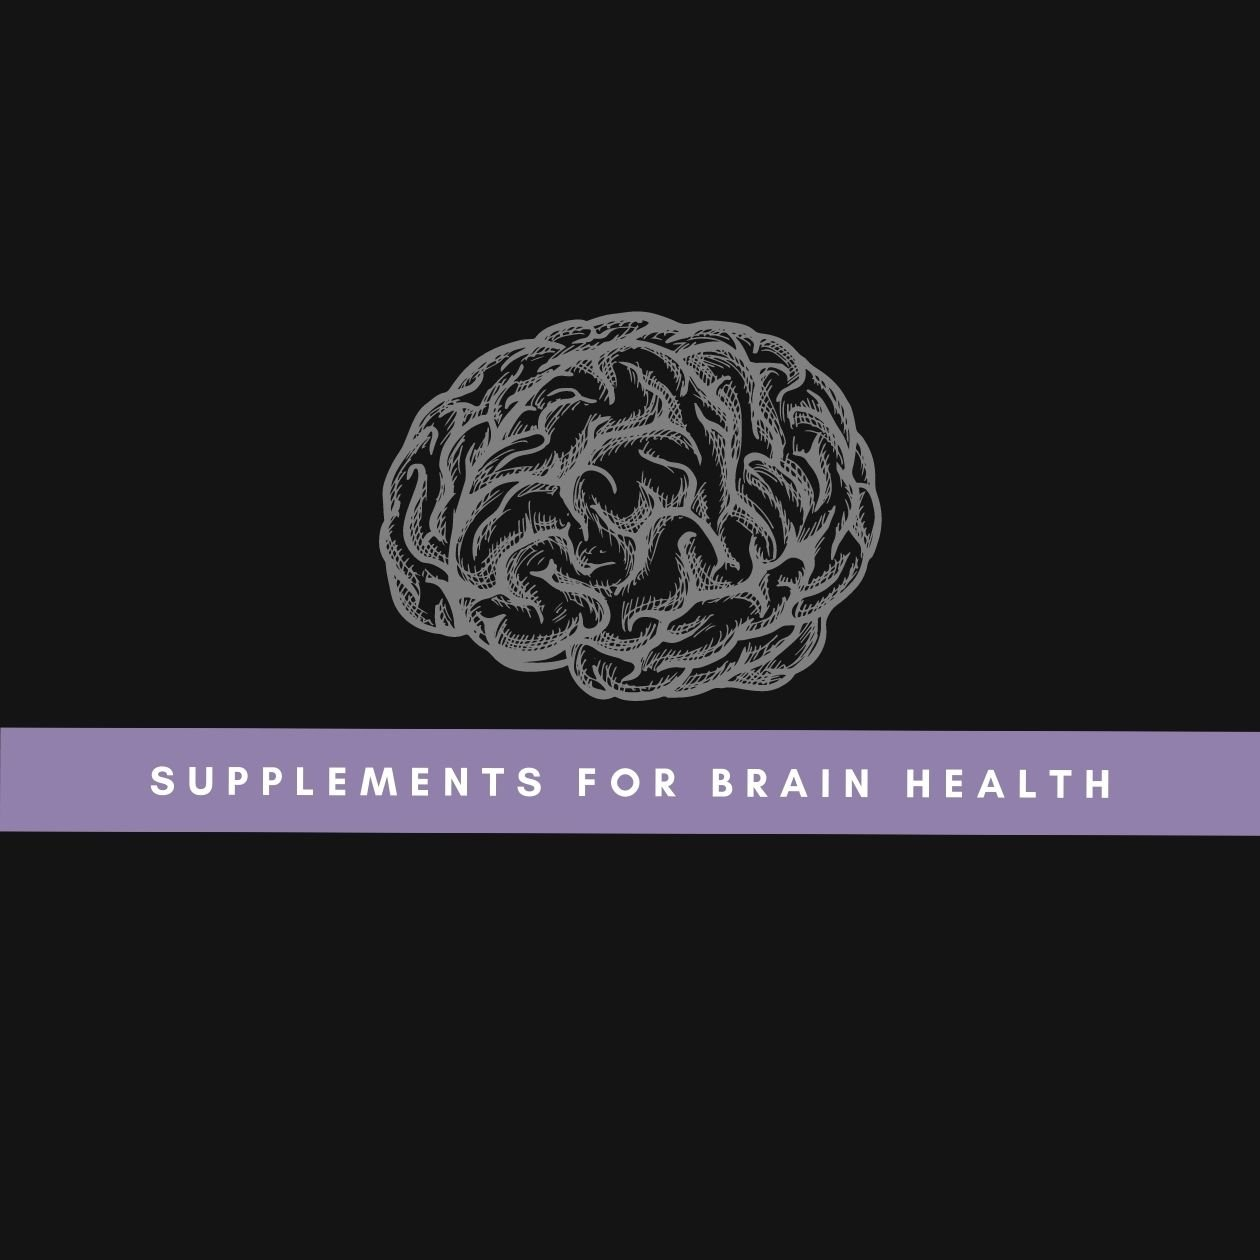 Supplements for brain health: an illustration